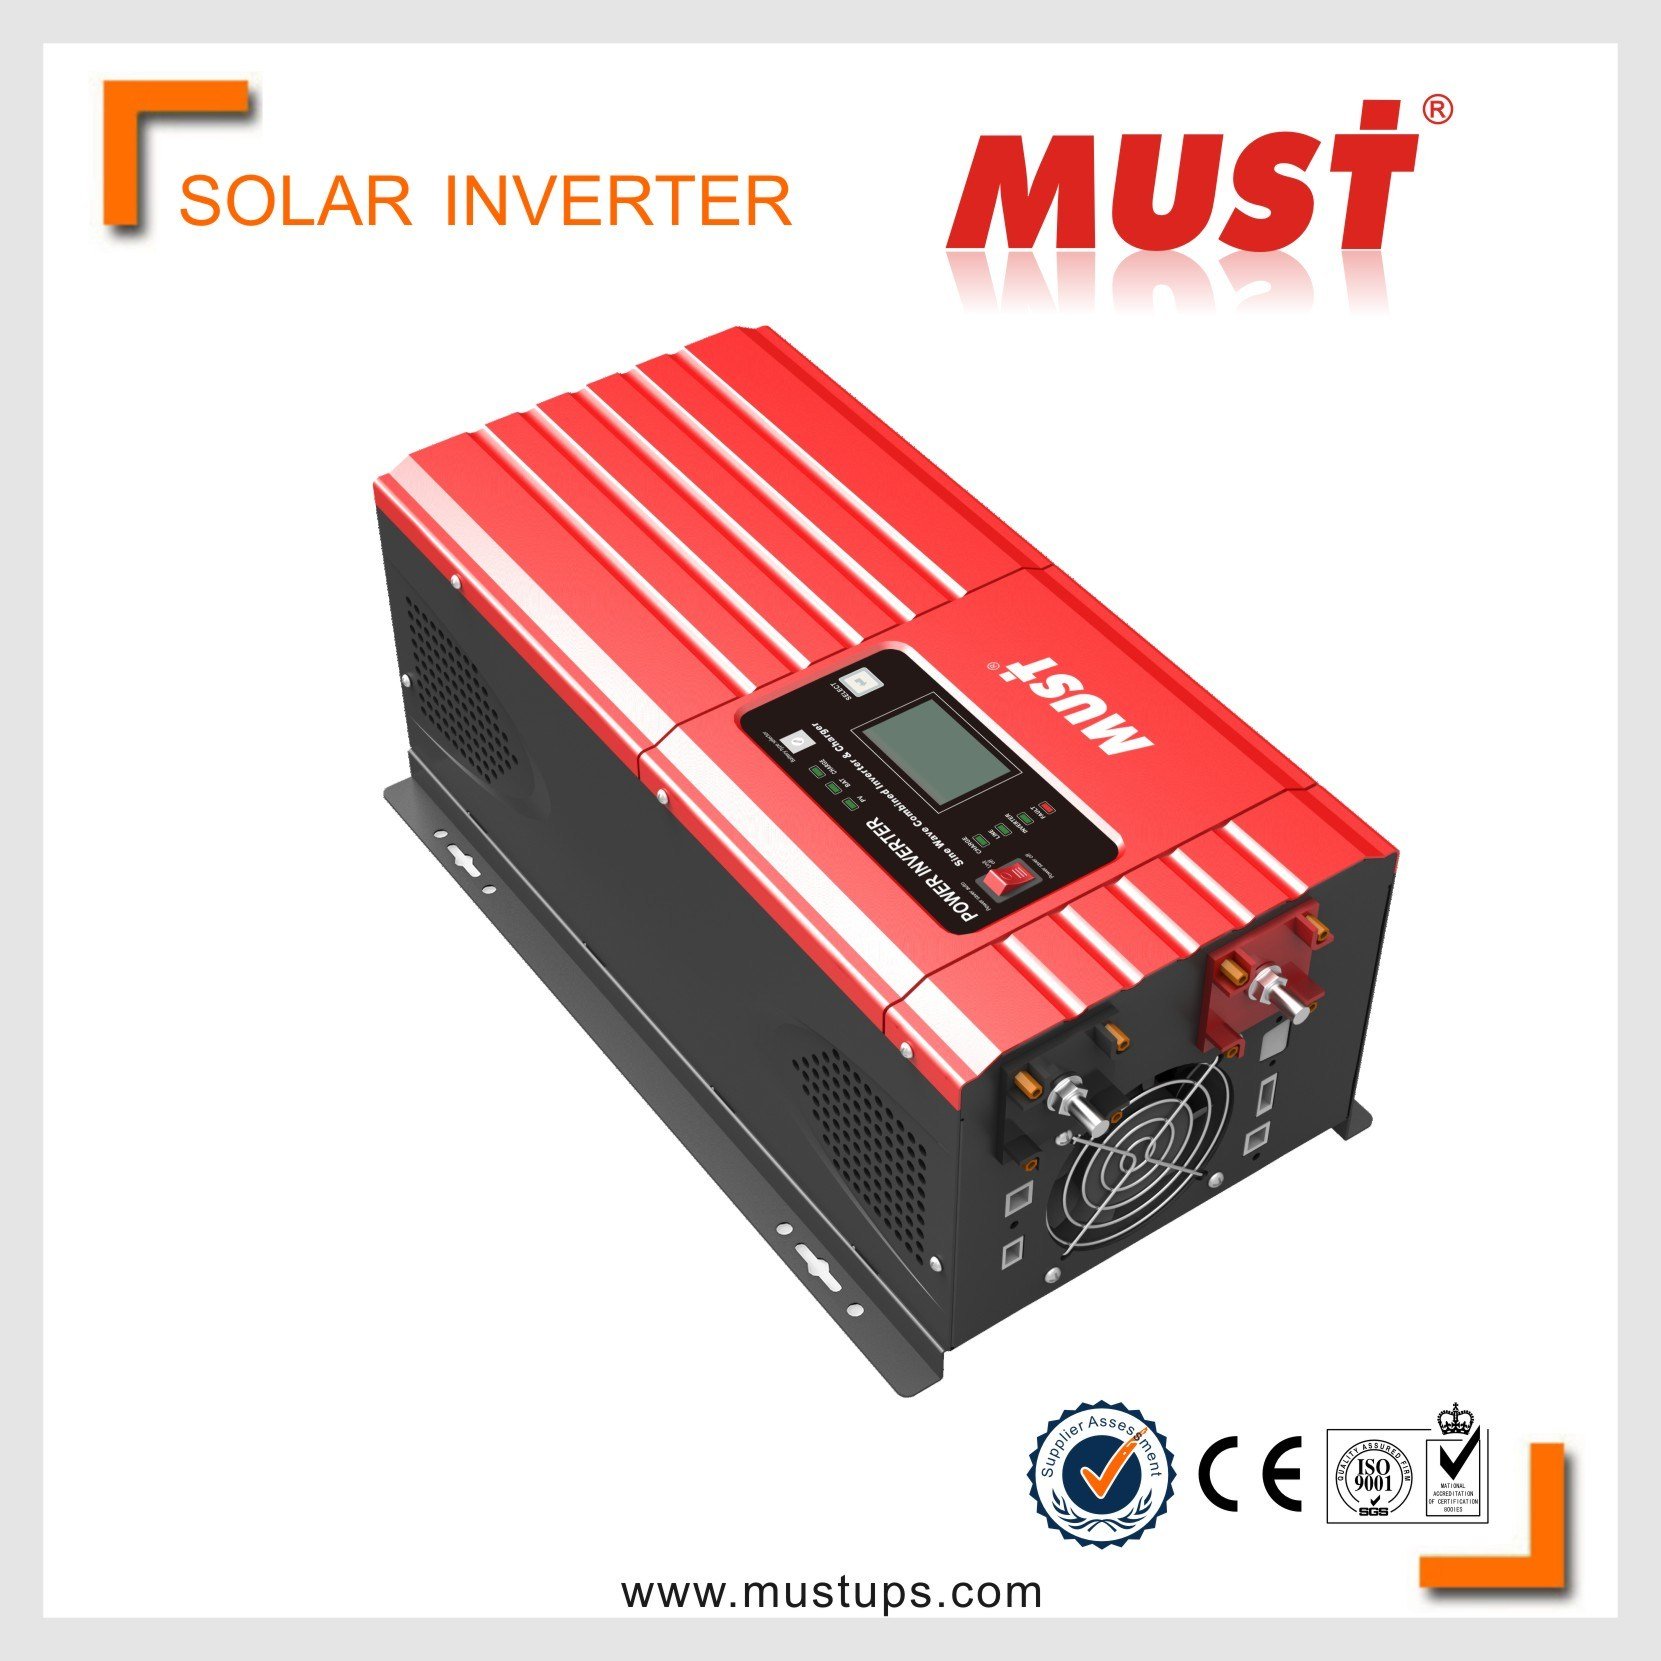 China Must Ep3000 Pro 1kw 6kw Pure Sine Wave Hybrid Mppt Invertor Wavedc Sign Wavesine Diagrampwm Inverterpure For Solar Power System Inverter